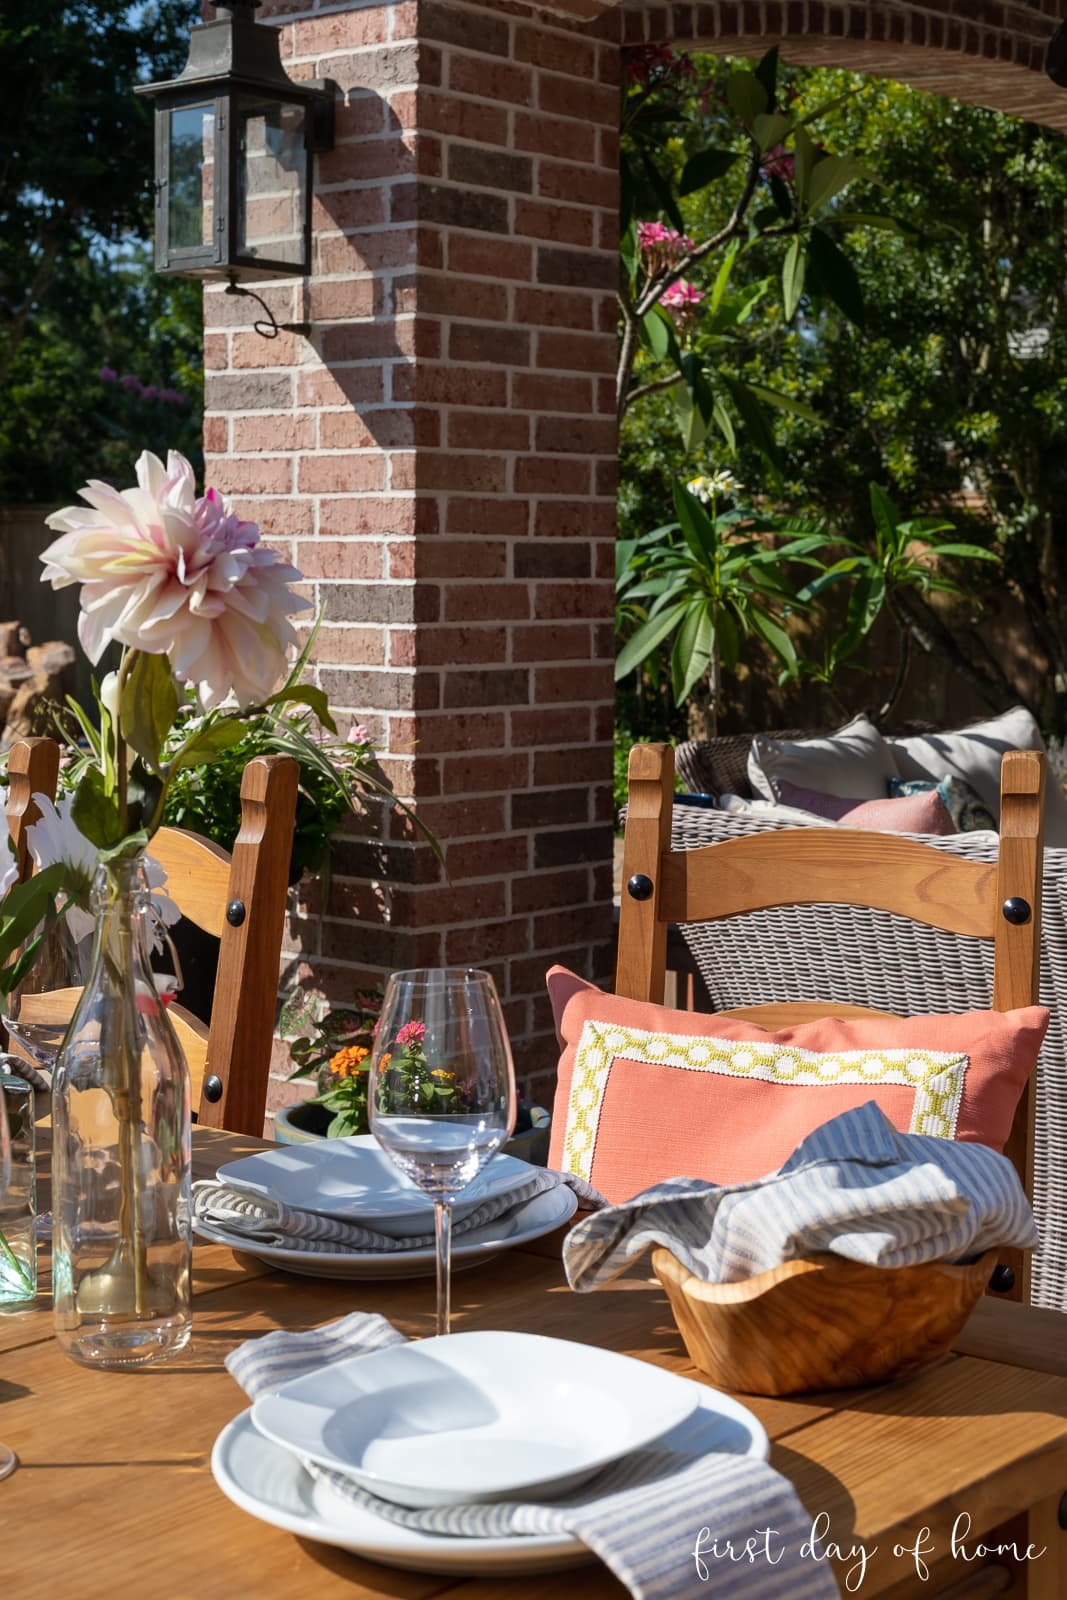 Outdoor dining table with floral centerpiece